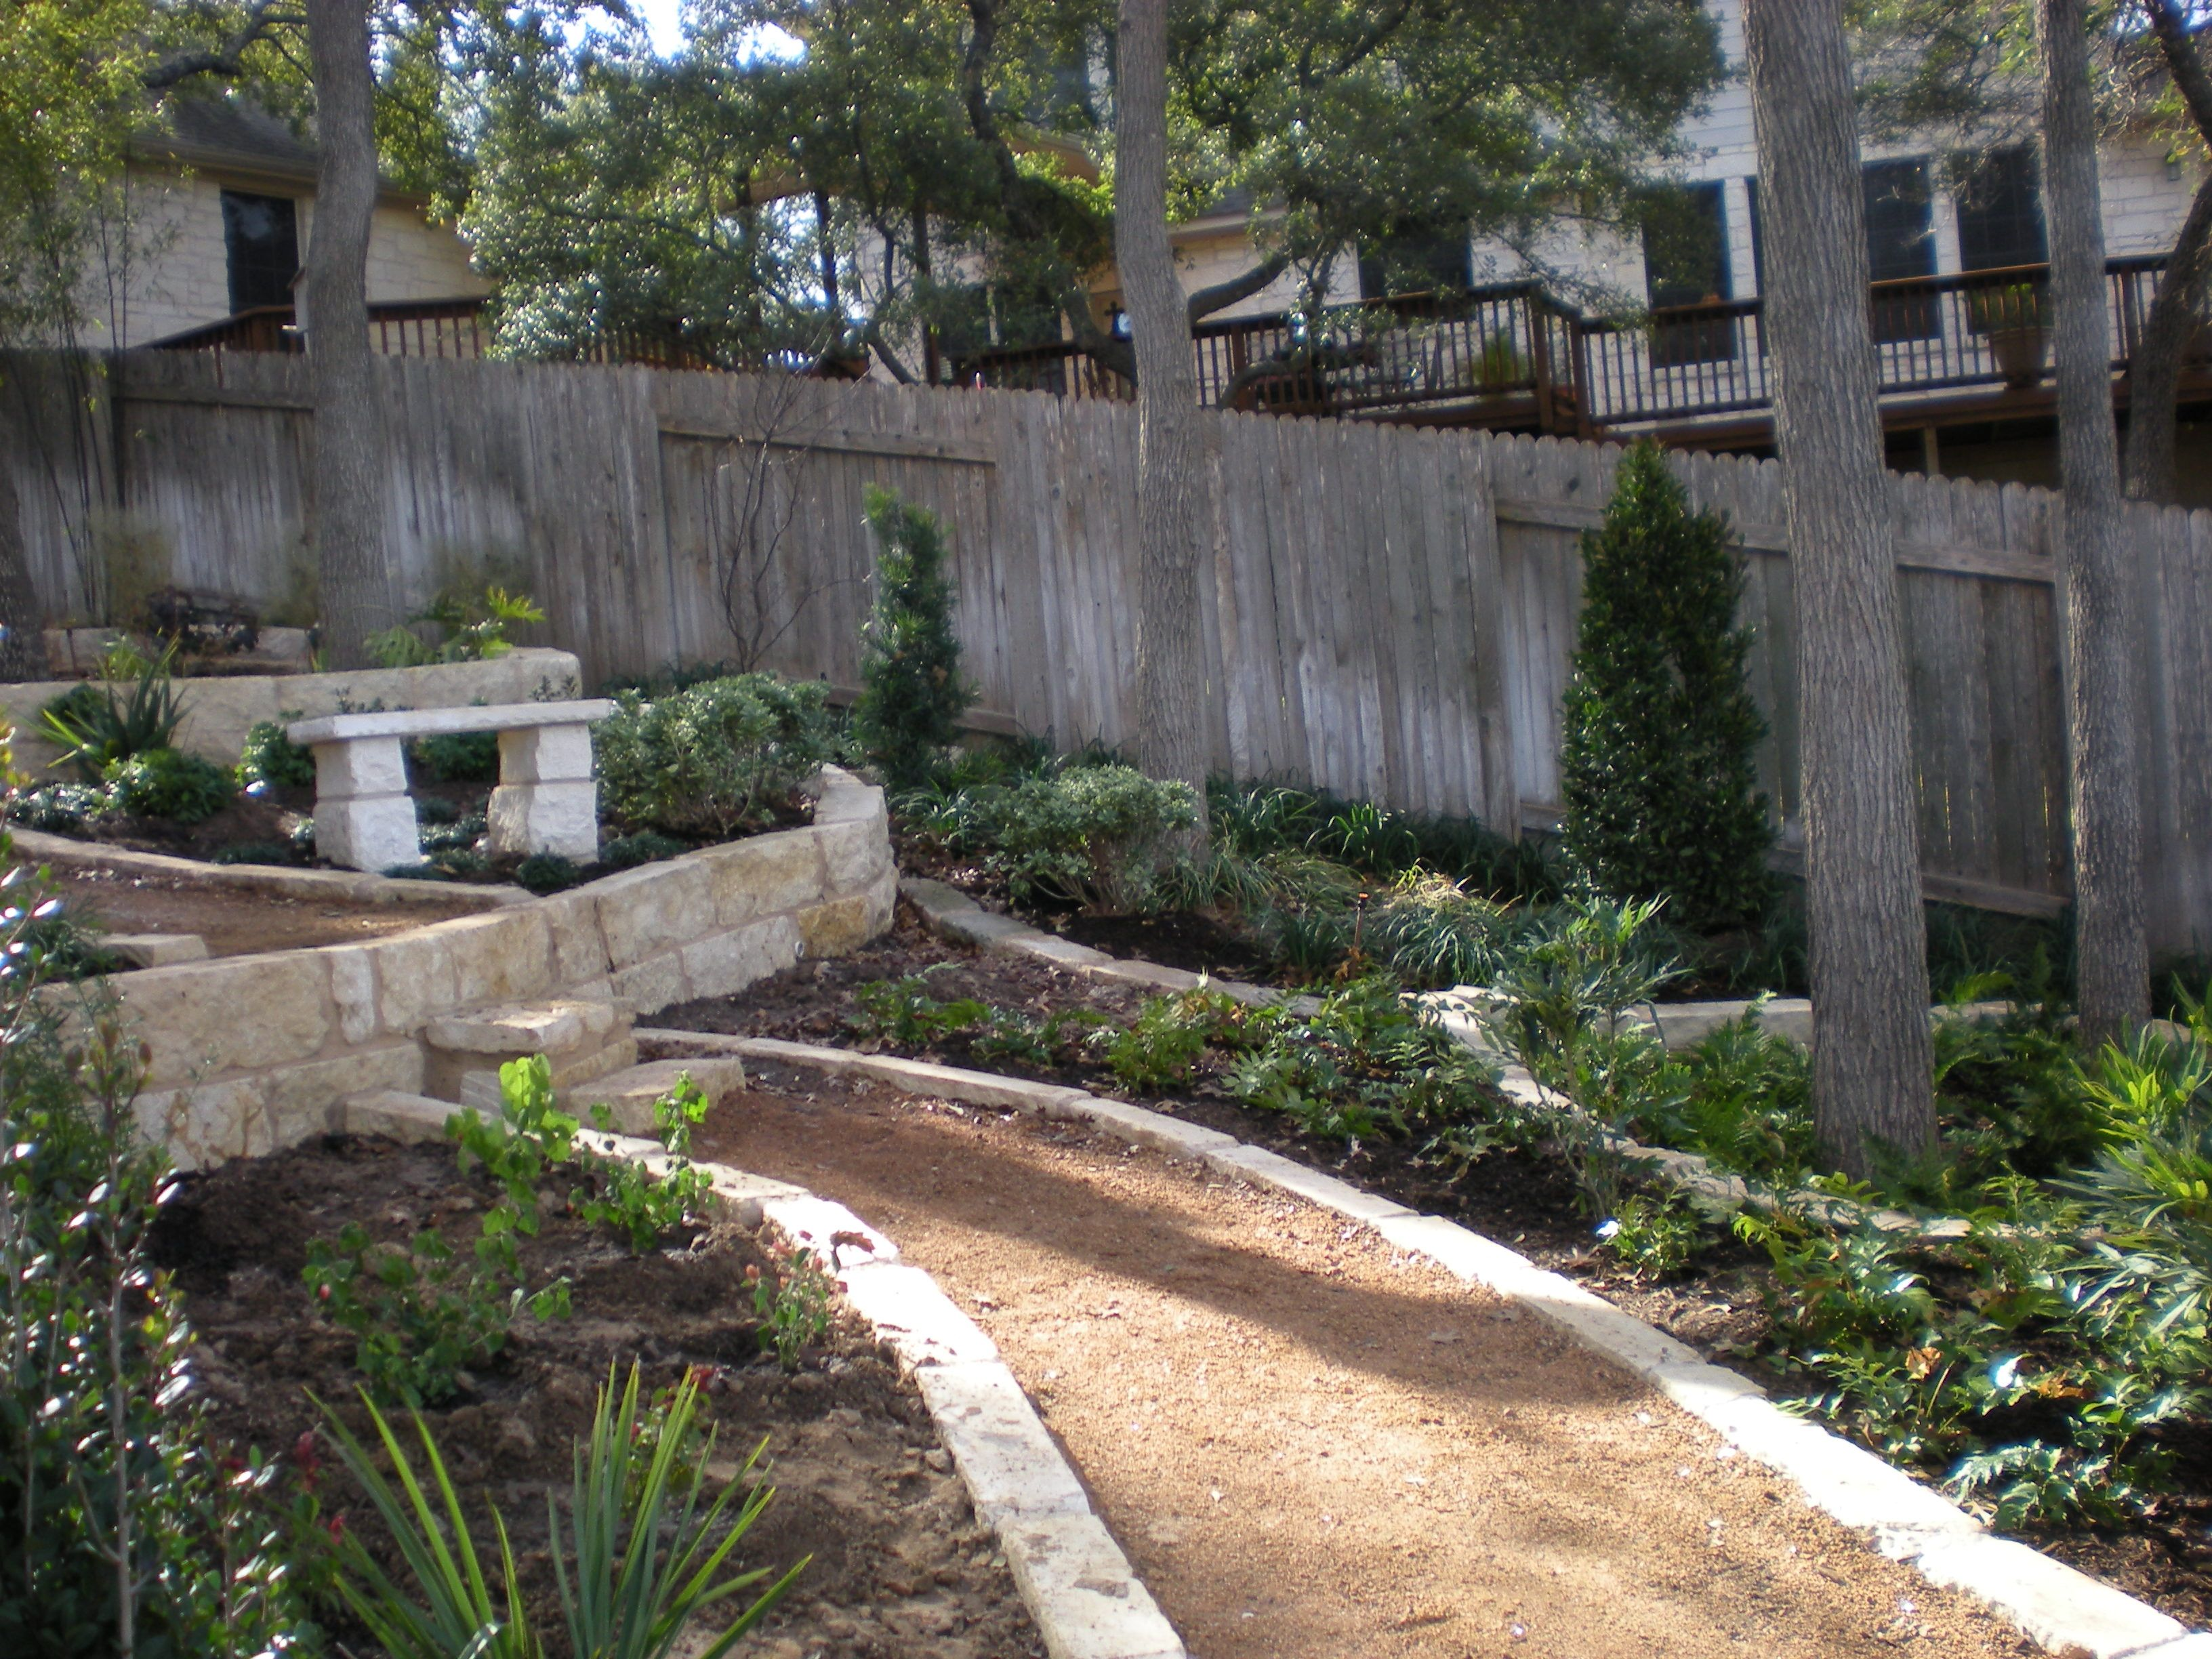 Pin By Goodlife Luxury On Austin Xeriscape Ideas Texas Landscaping Small Backyard Landscaping Garden Landscaping Diy